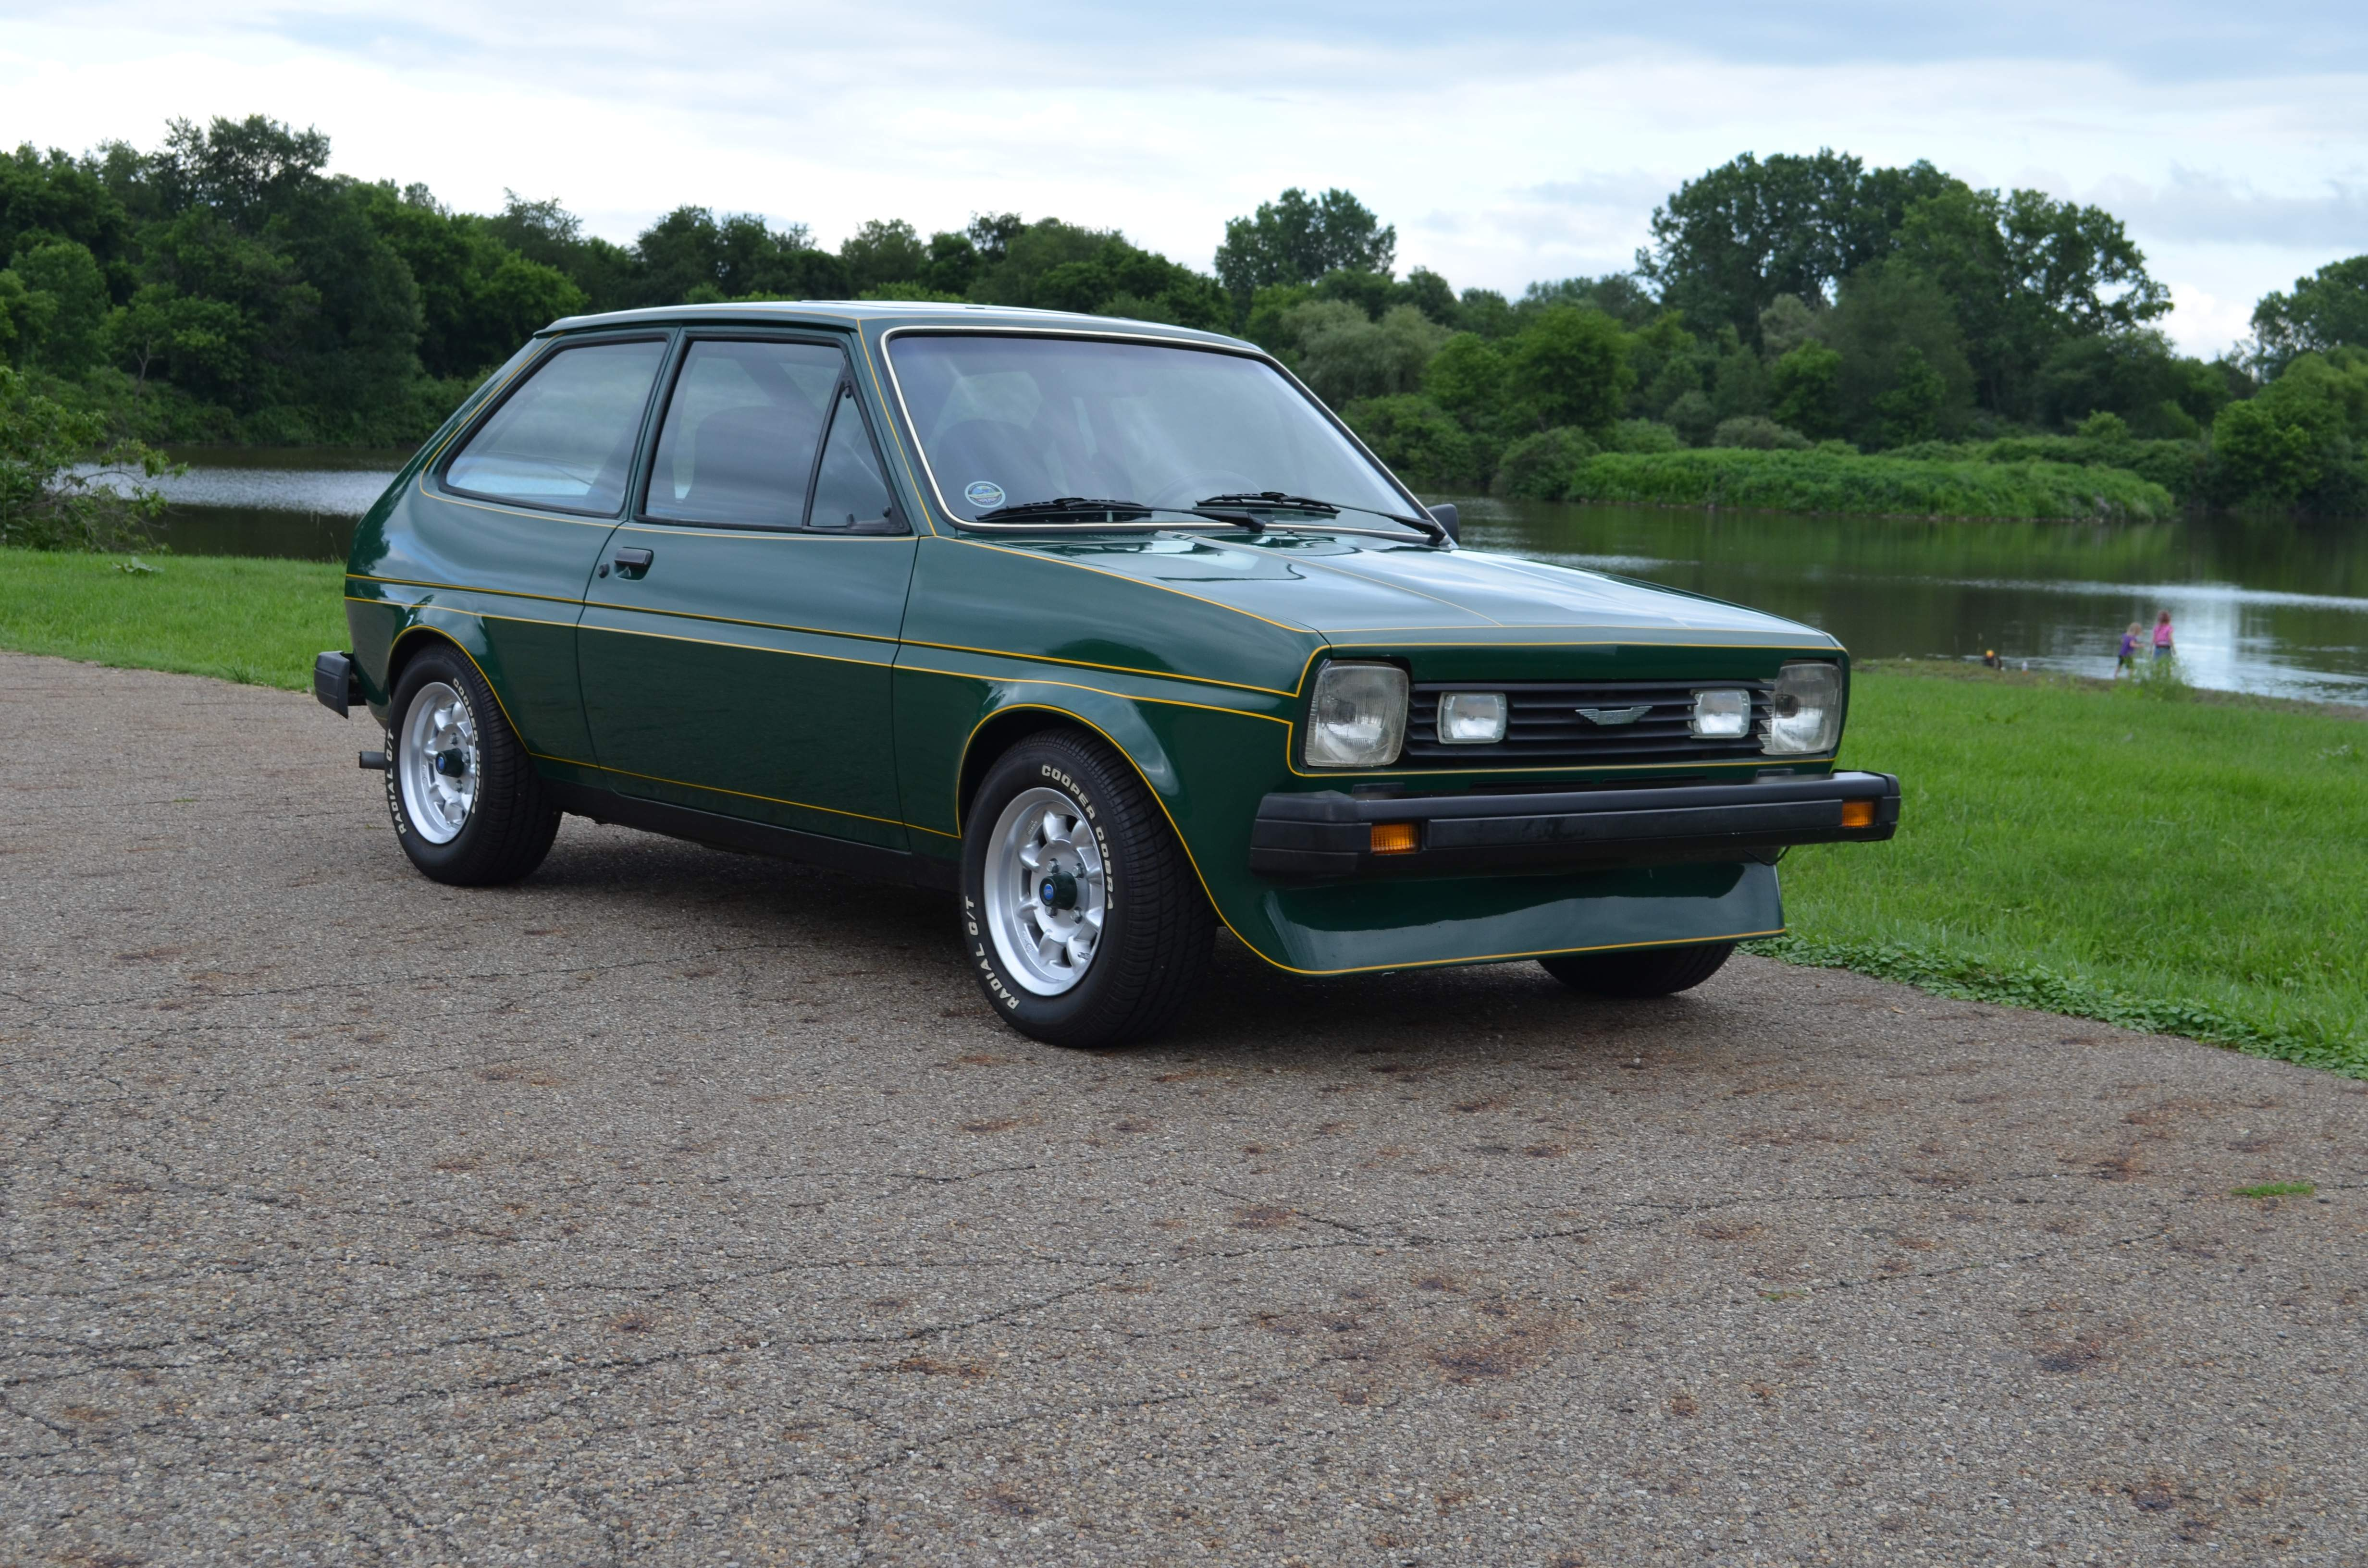 Ford Fiesta 1.6 1978 photo - 2